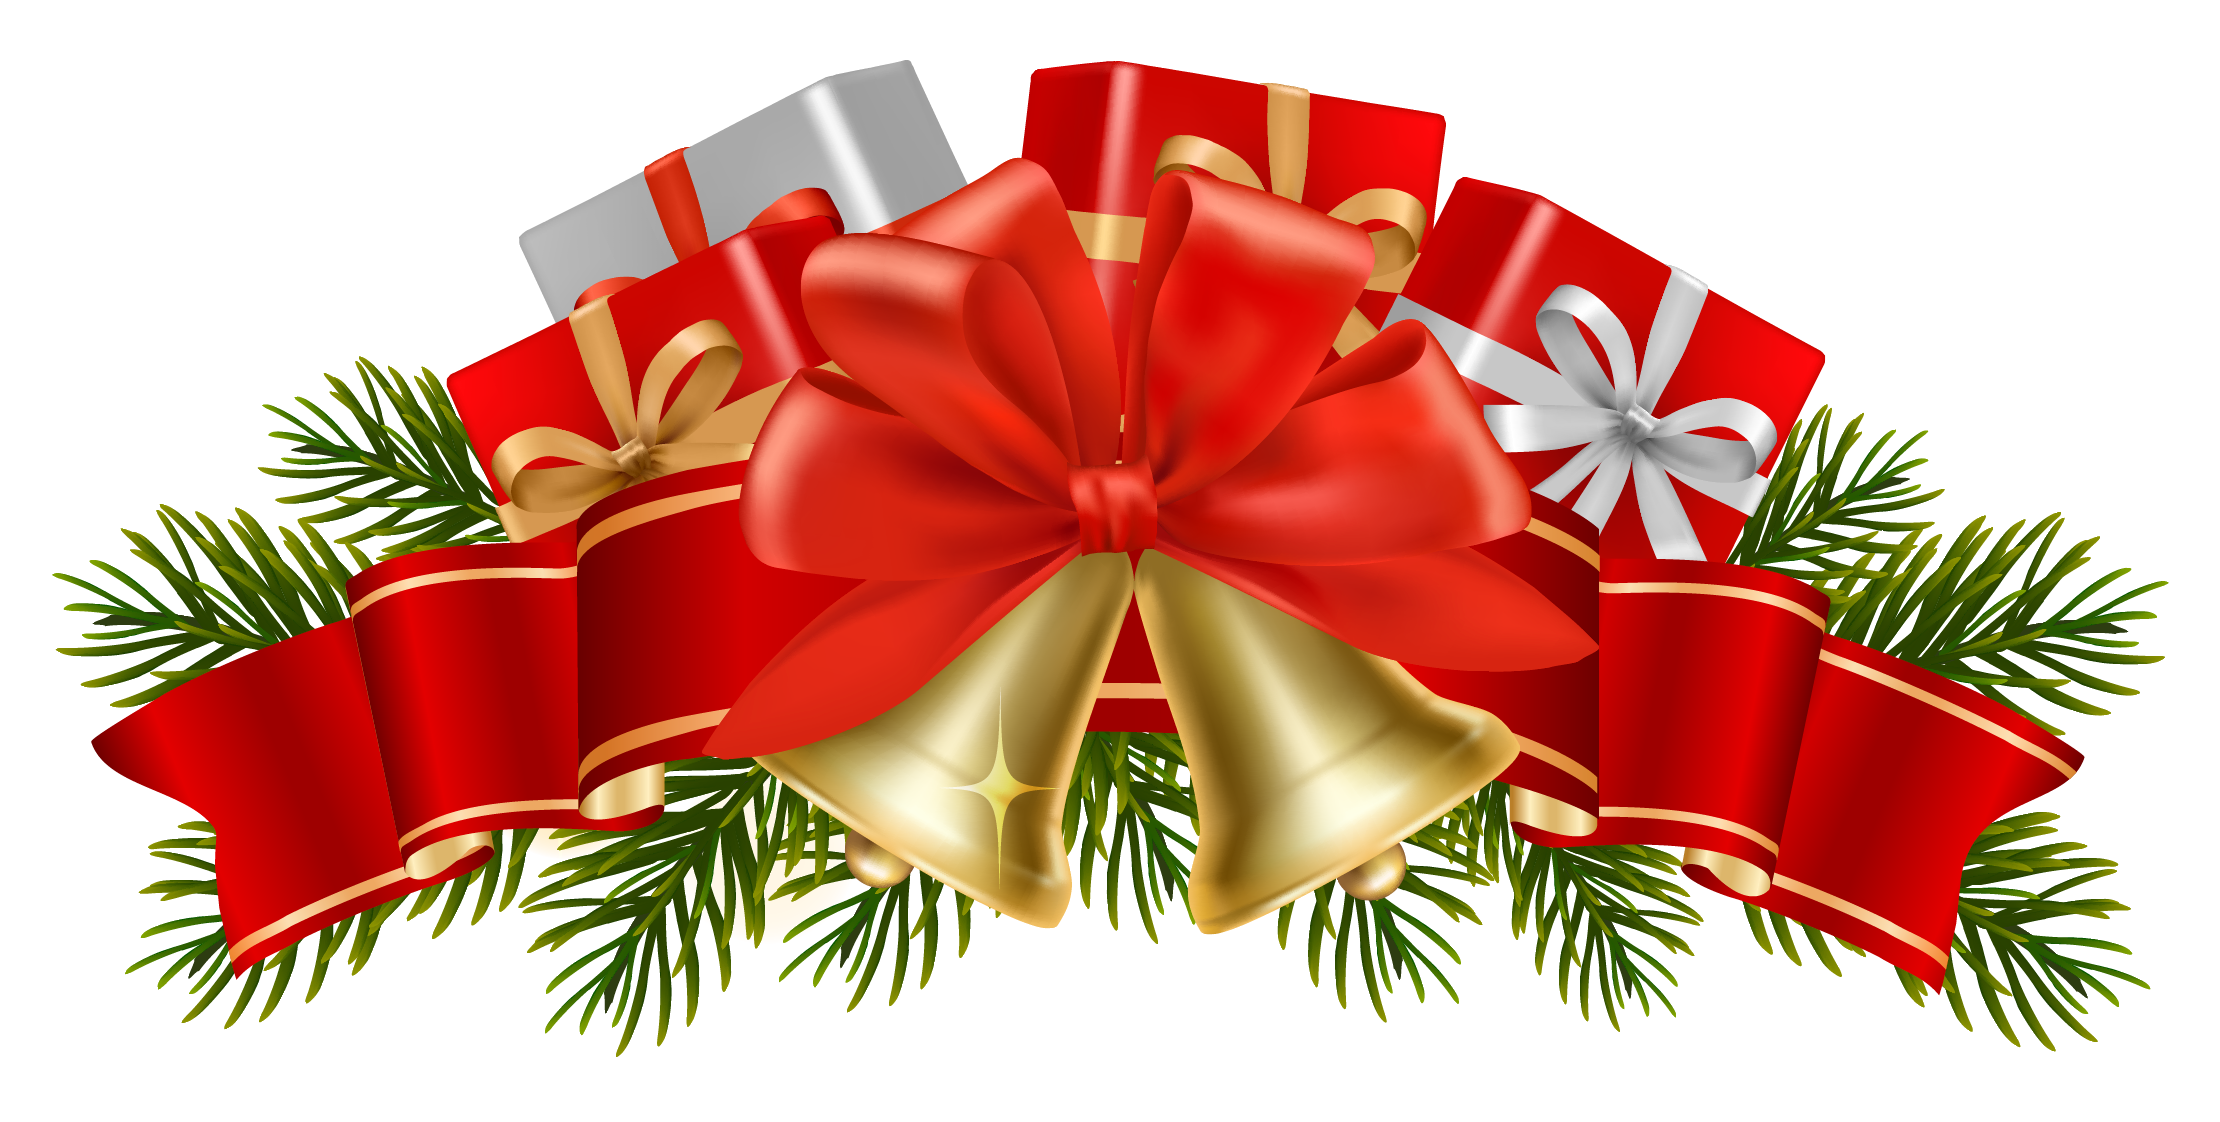 Christmas decorations images clipart - Find This Pin And More On Store Front Decorations Transparent Christmas Decor With Bells Png Clipart